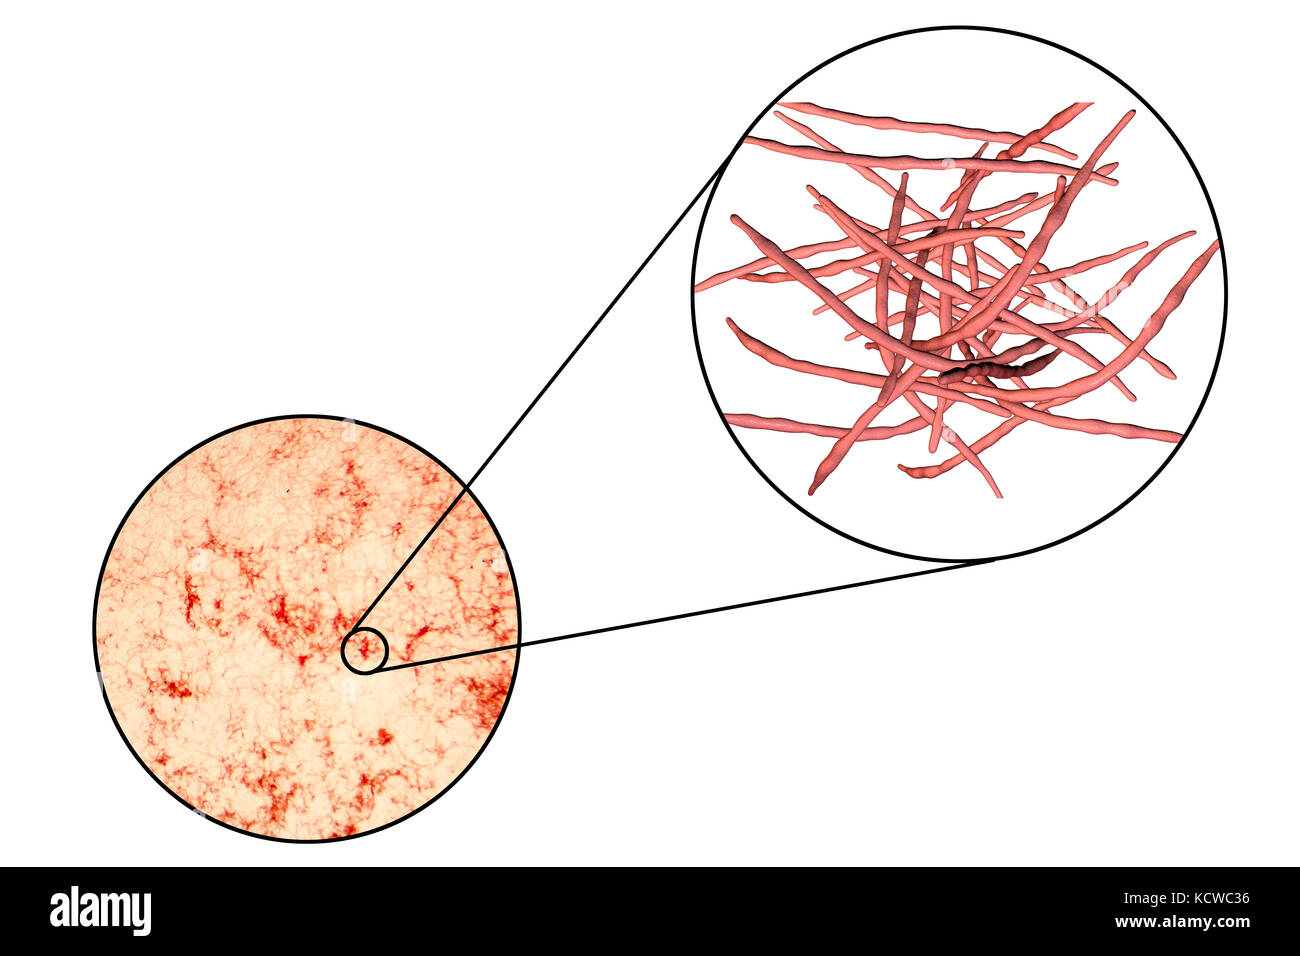 Actinomycete bacteria, micrograph and computer illustration. These filamentous Gram positive bacteria form a fungus - Stock Image